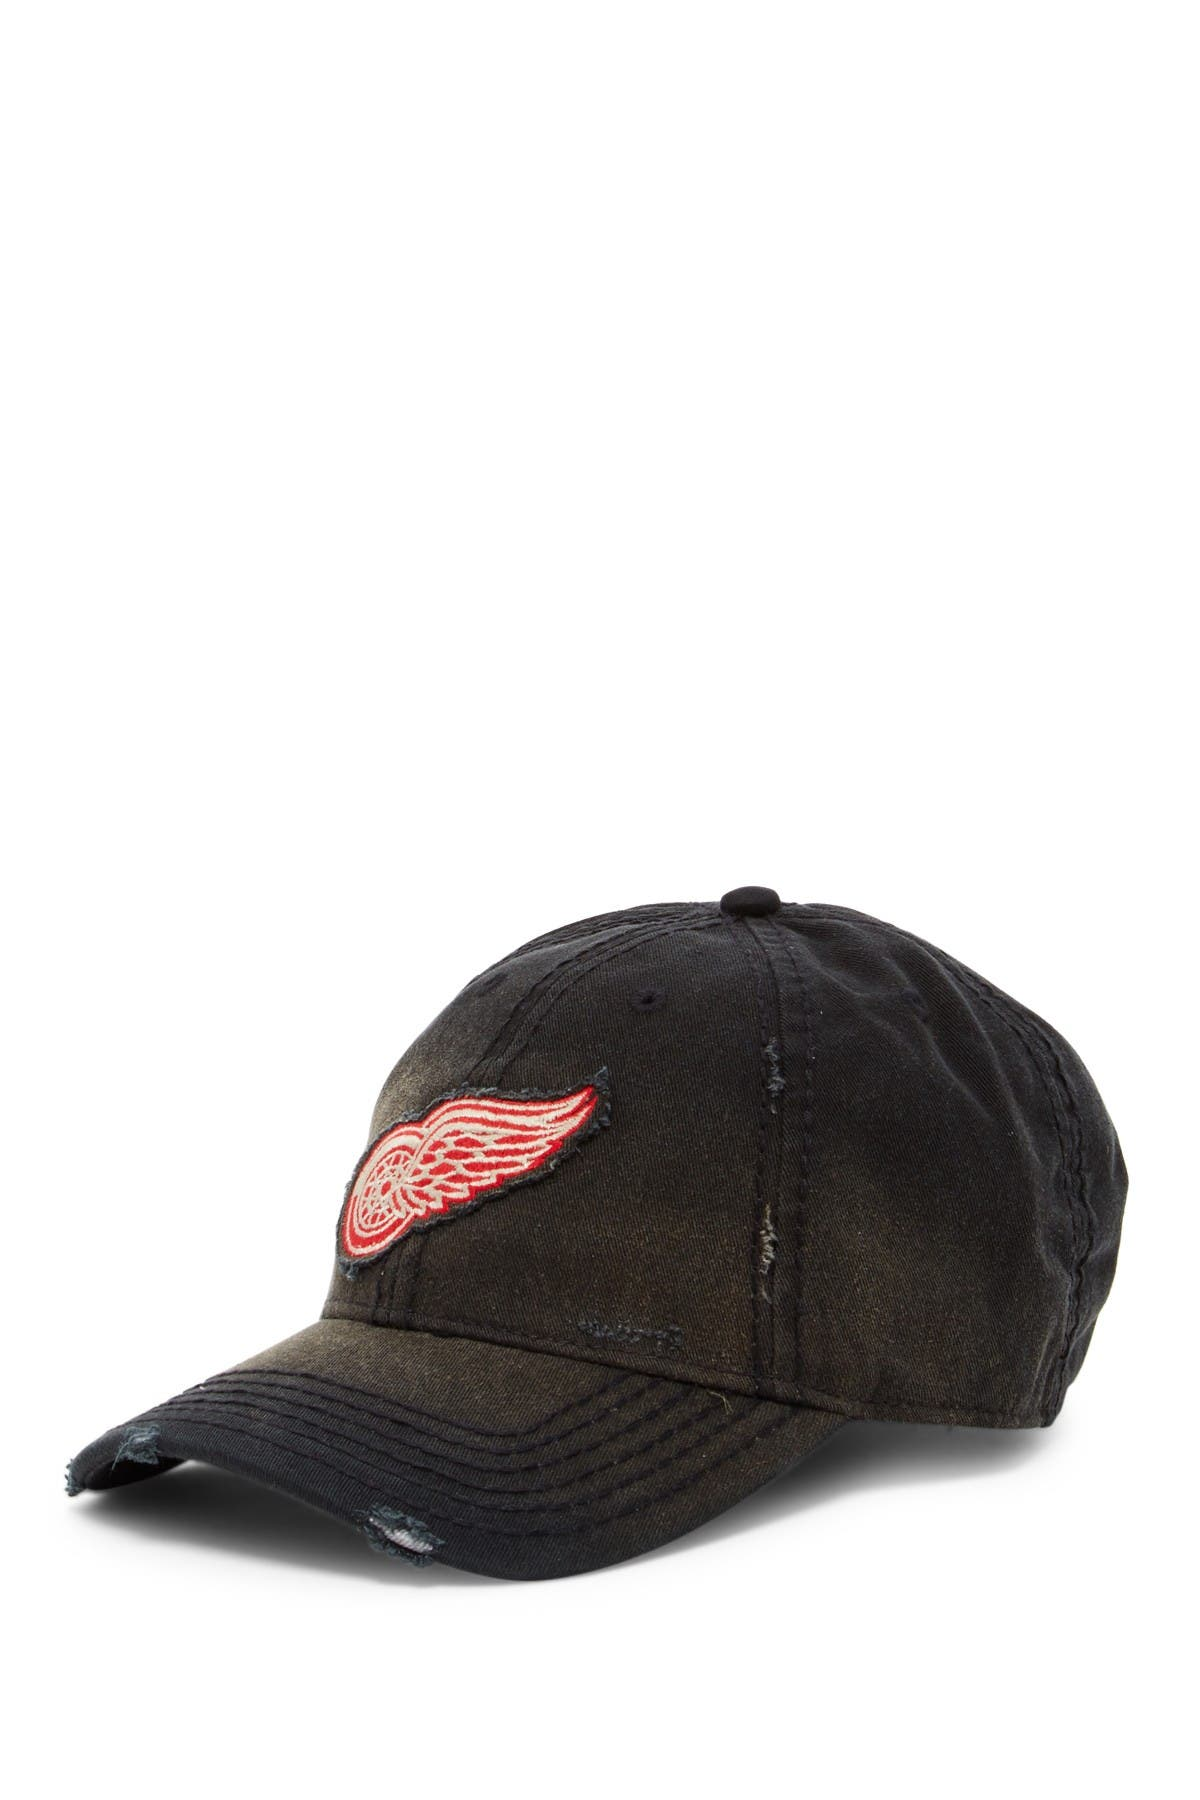 Image of American Needle NHL Detroit Red Wings Nero Logo Baseball Cap